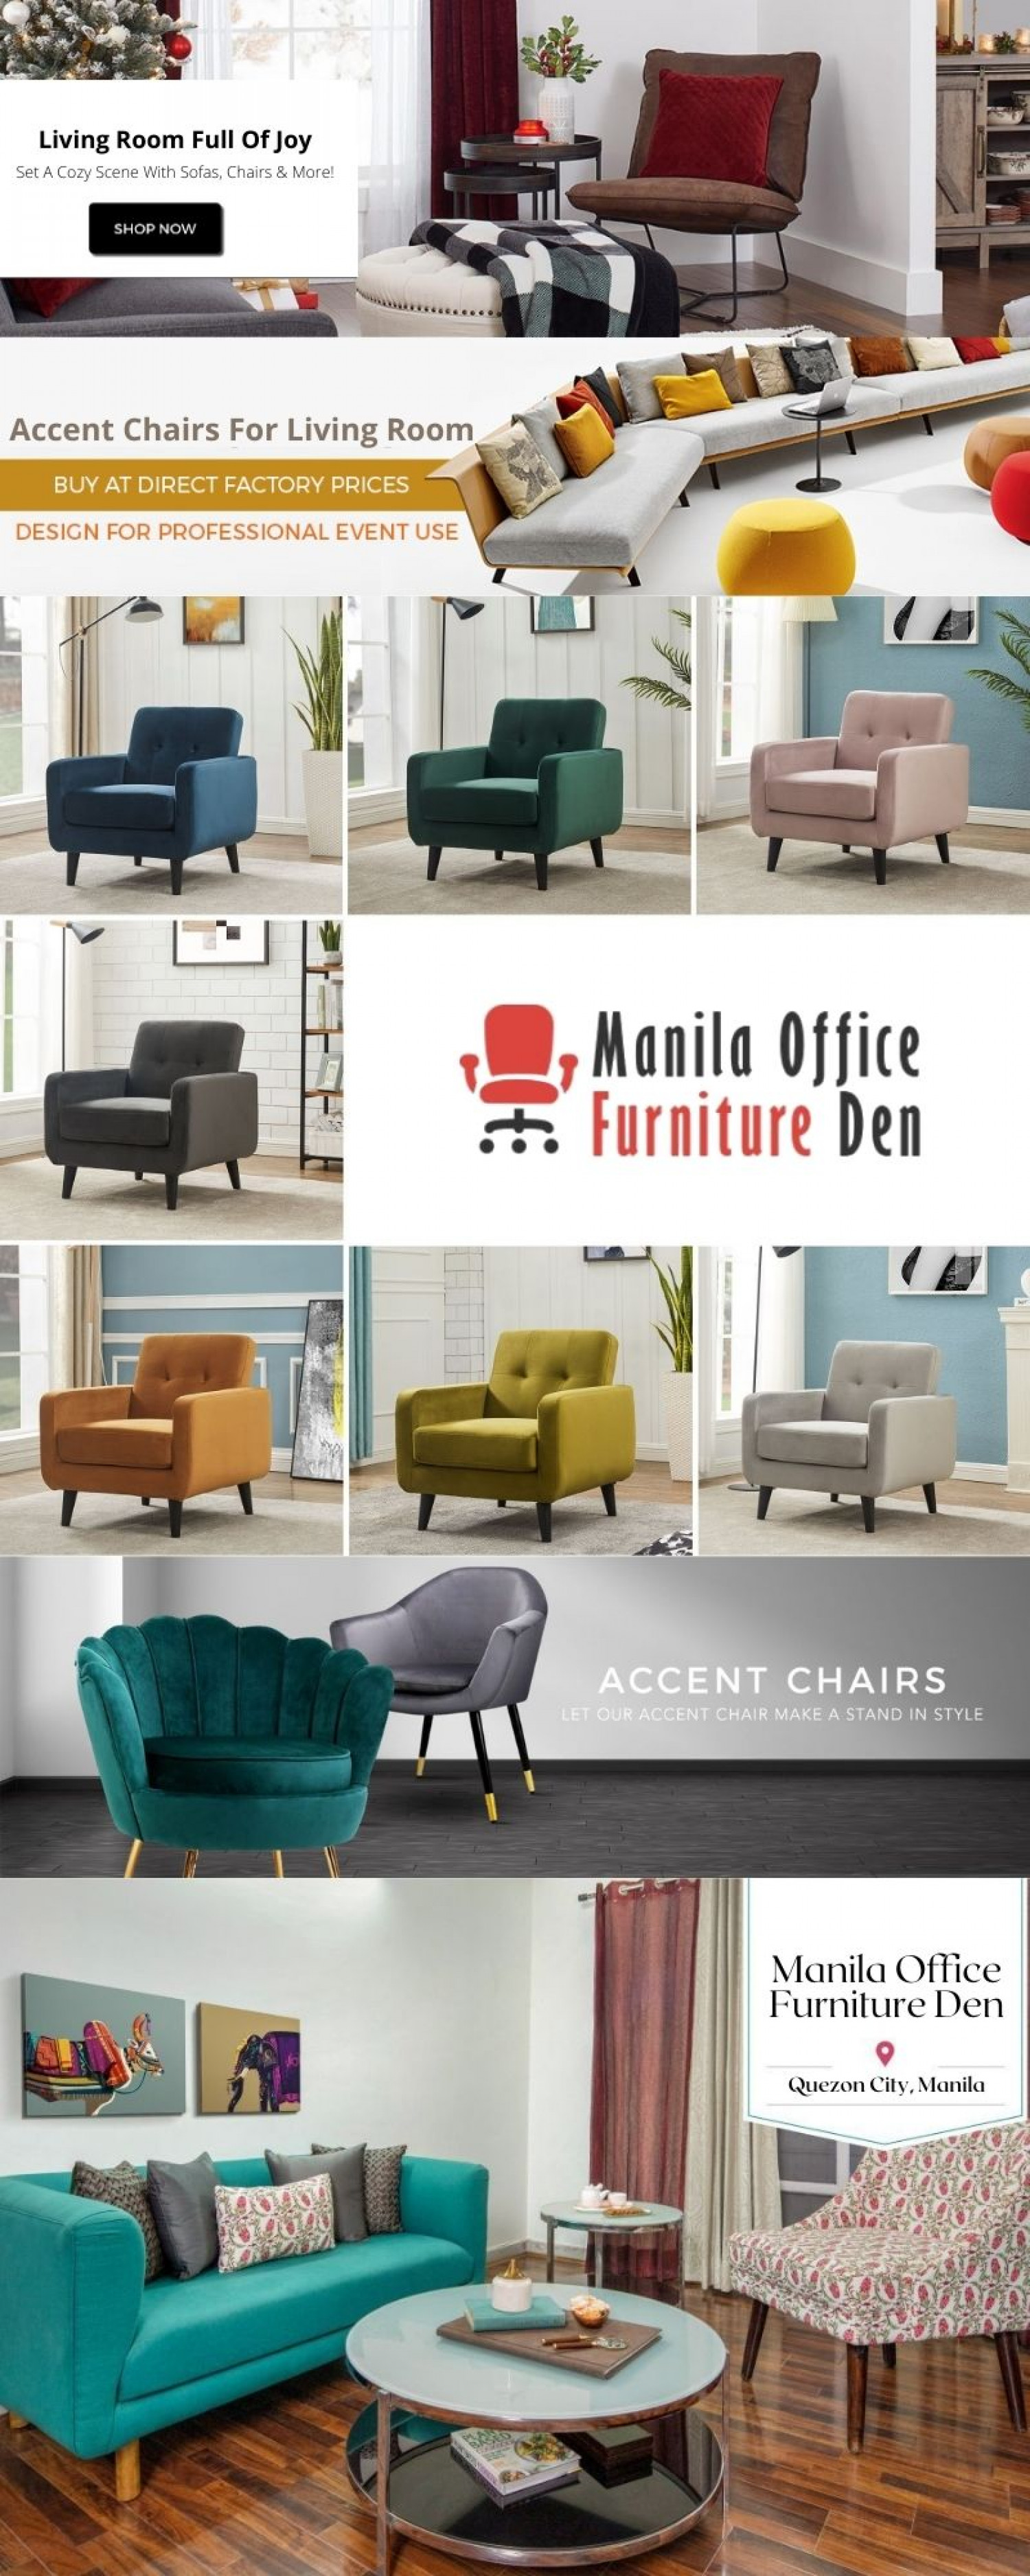 Let Our Accent Chair Make A Stand In Style Infographic